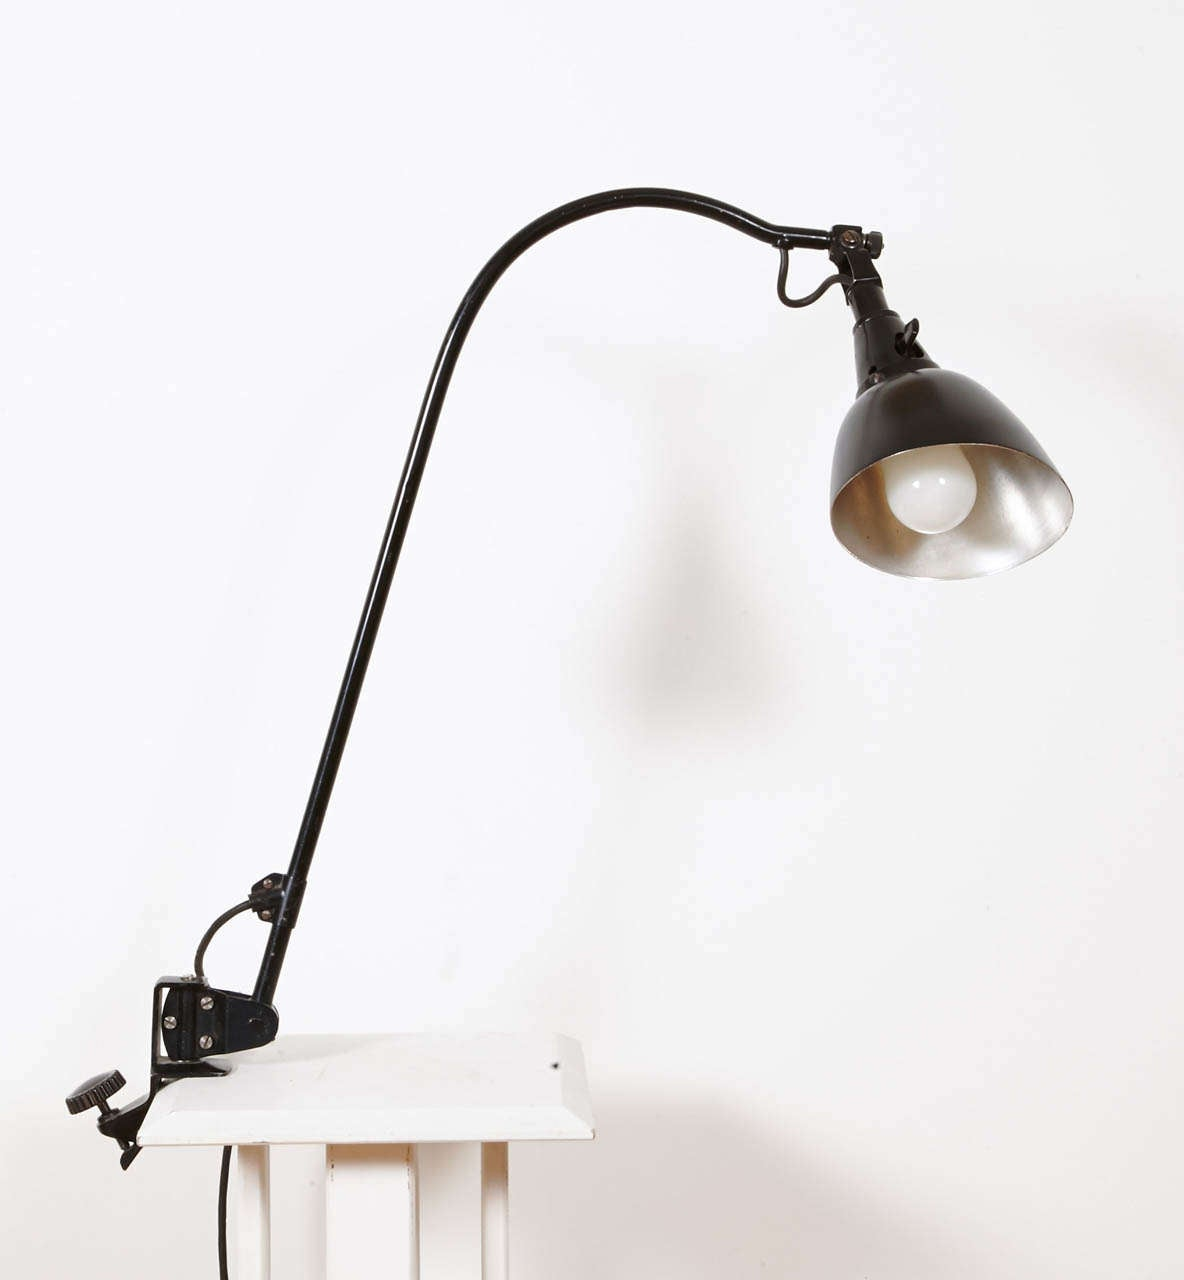 German Bauhaus Midgard Task Light by Curt Fischer, circa 1923-1925